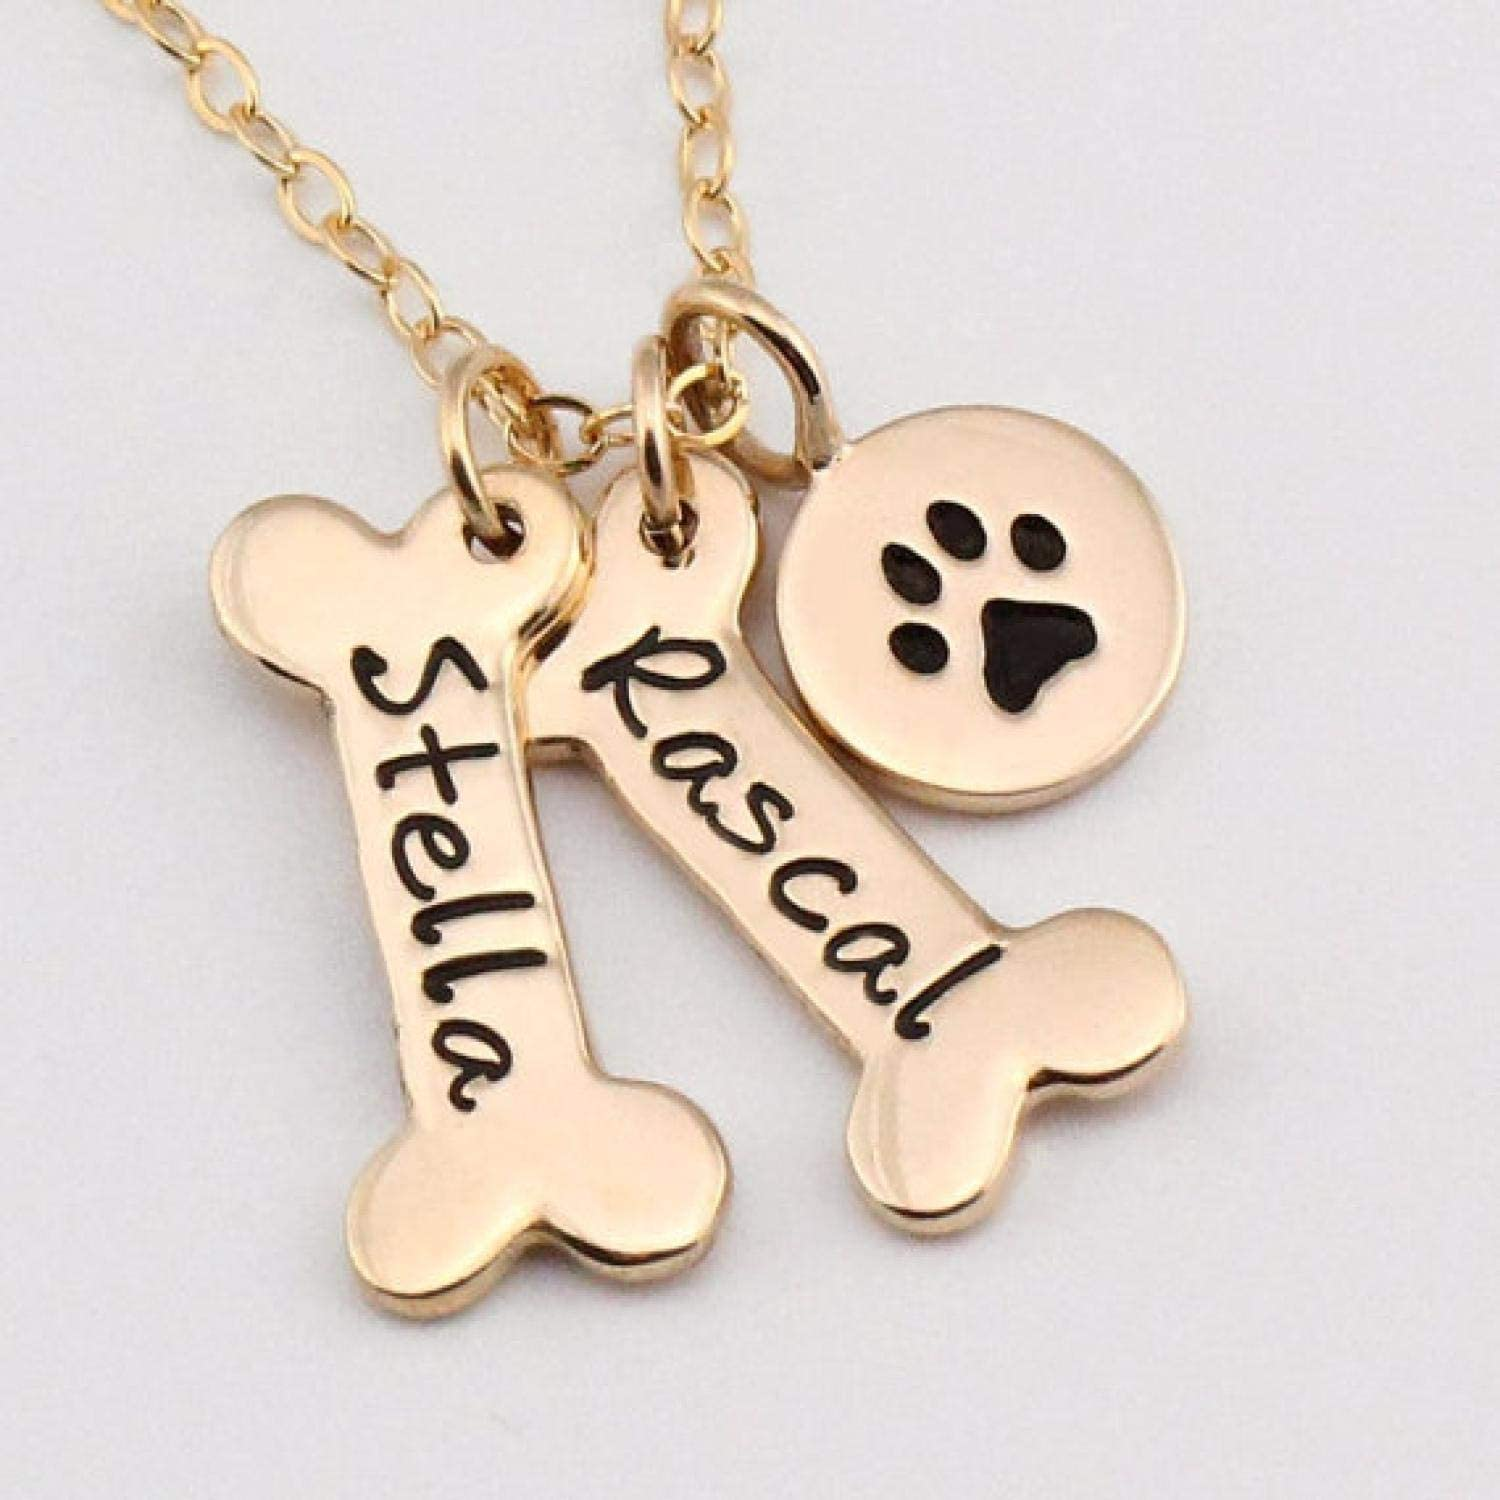 Bart Holt Name Necklace Dog Paw Necklace Personalized Dog Necklace Dog Bone Initial Charm Pet Jewelry